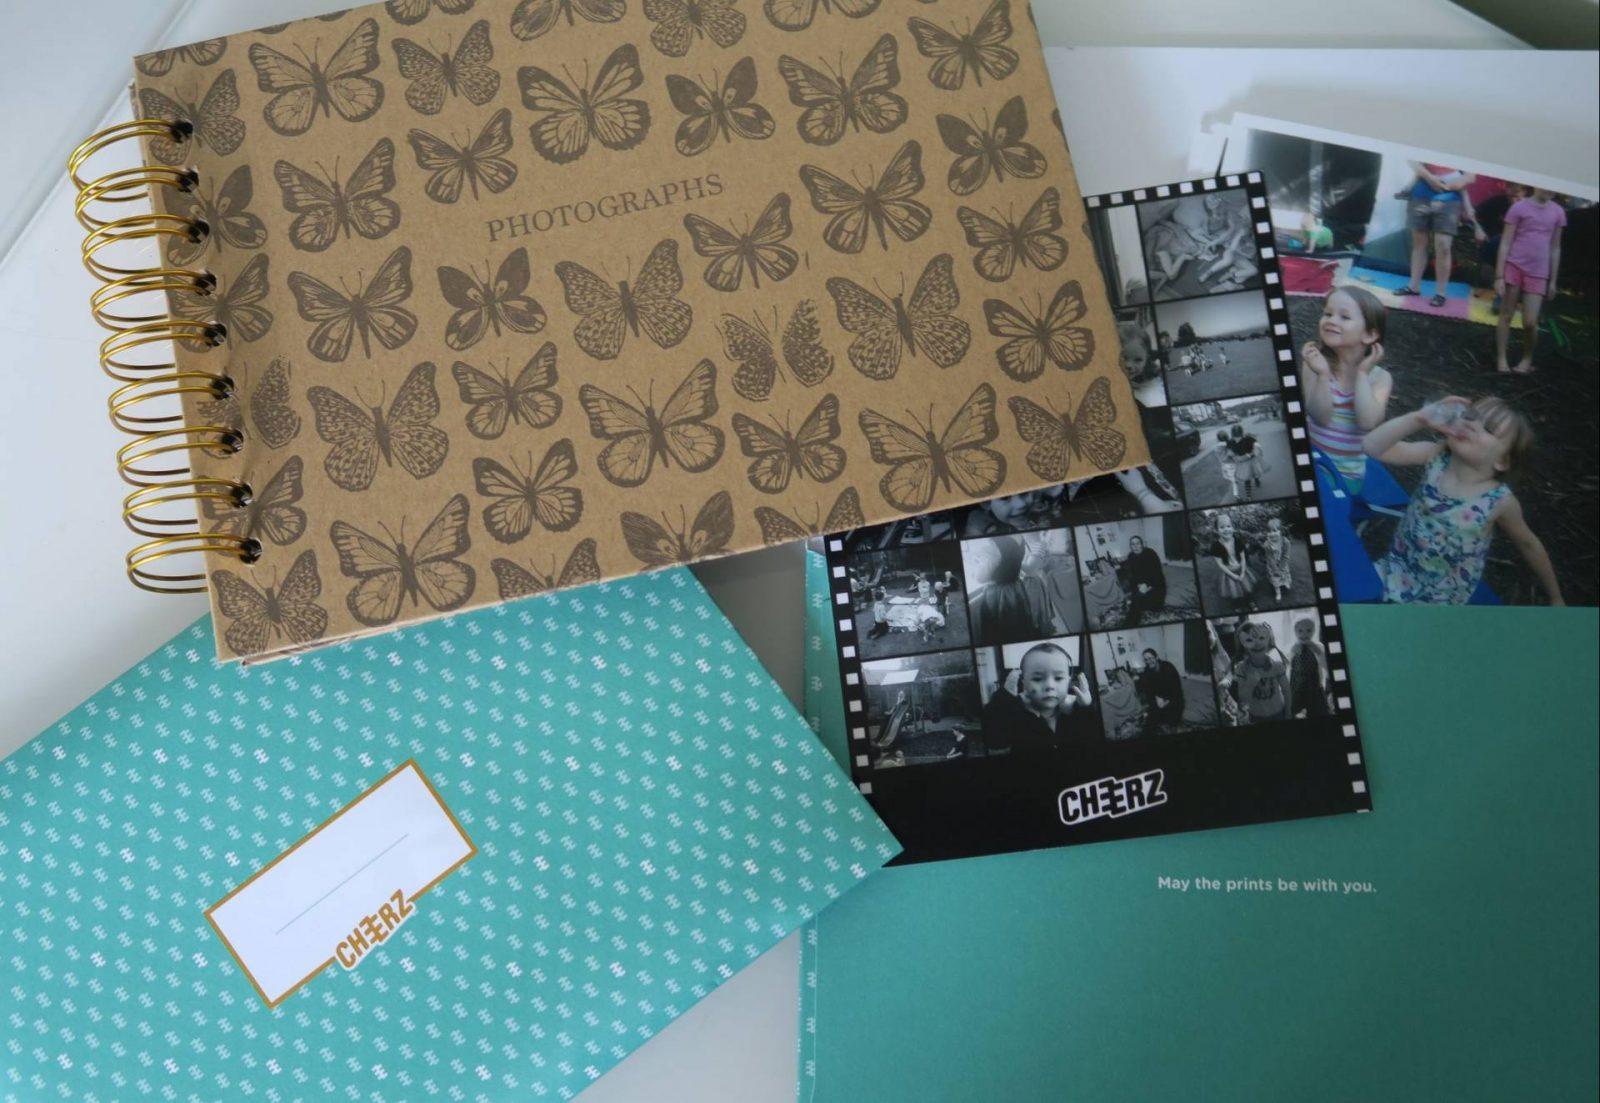 Cheerz Photo printing review and exclusive money off voucher inside